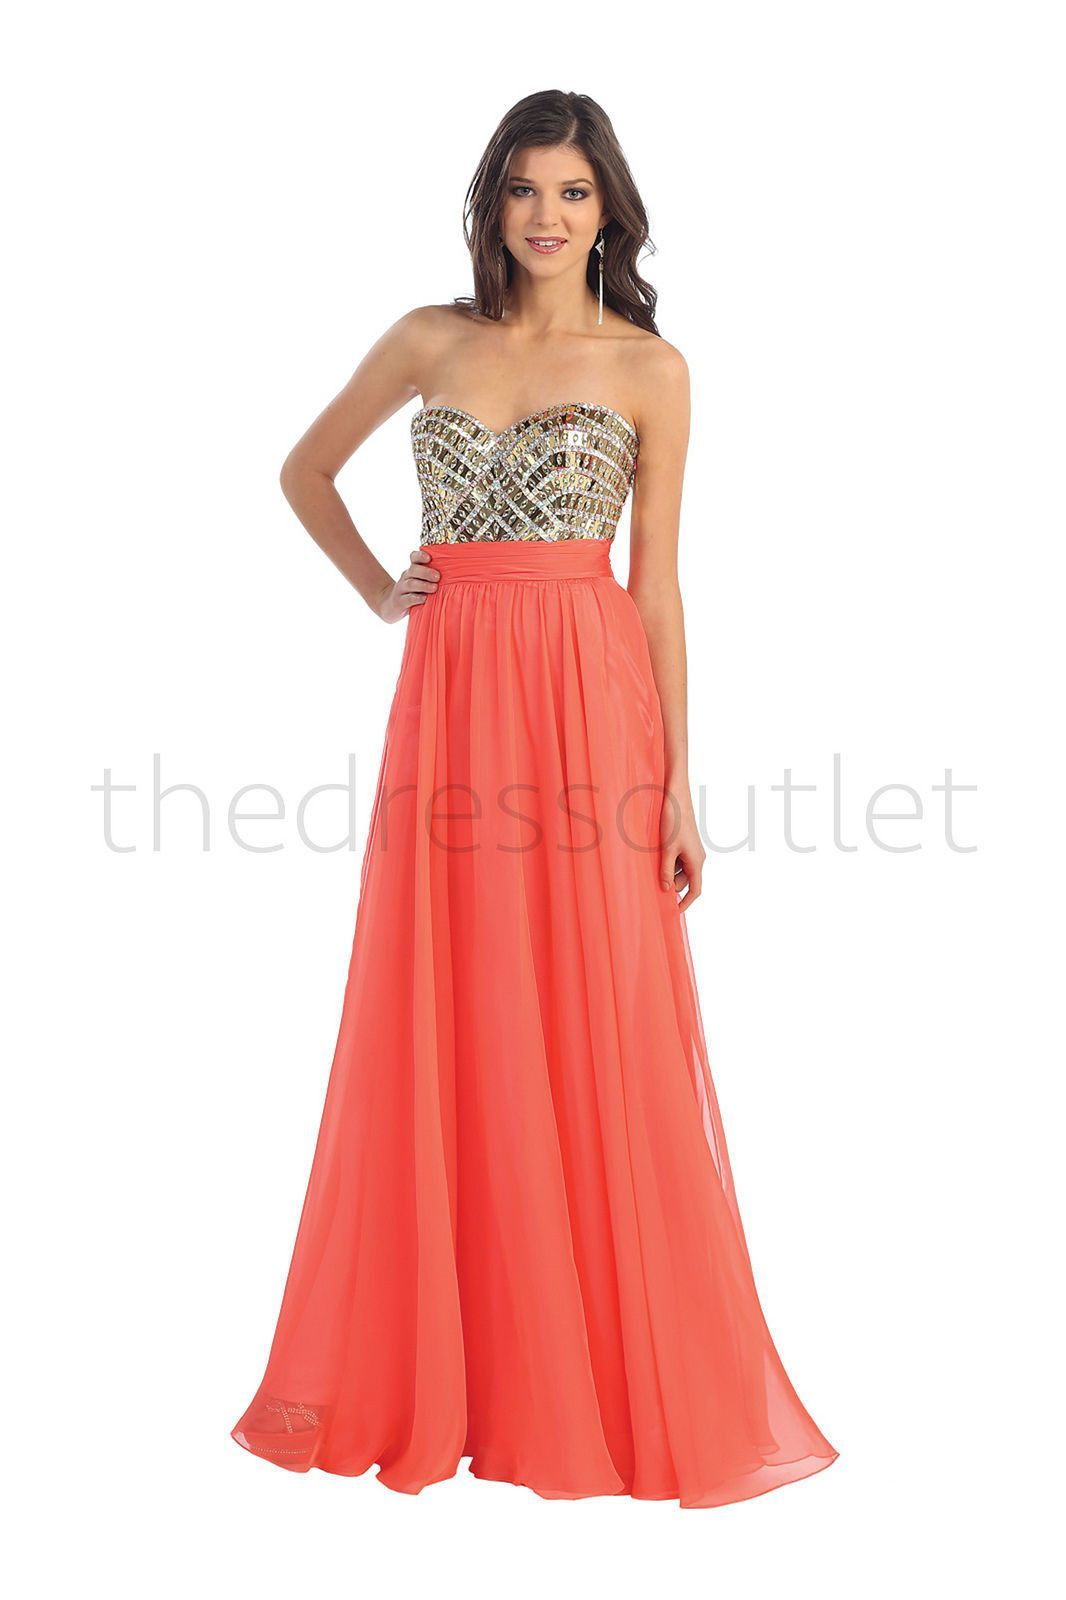 Strapless prom sheer overlay formal evening long formal gown